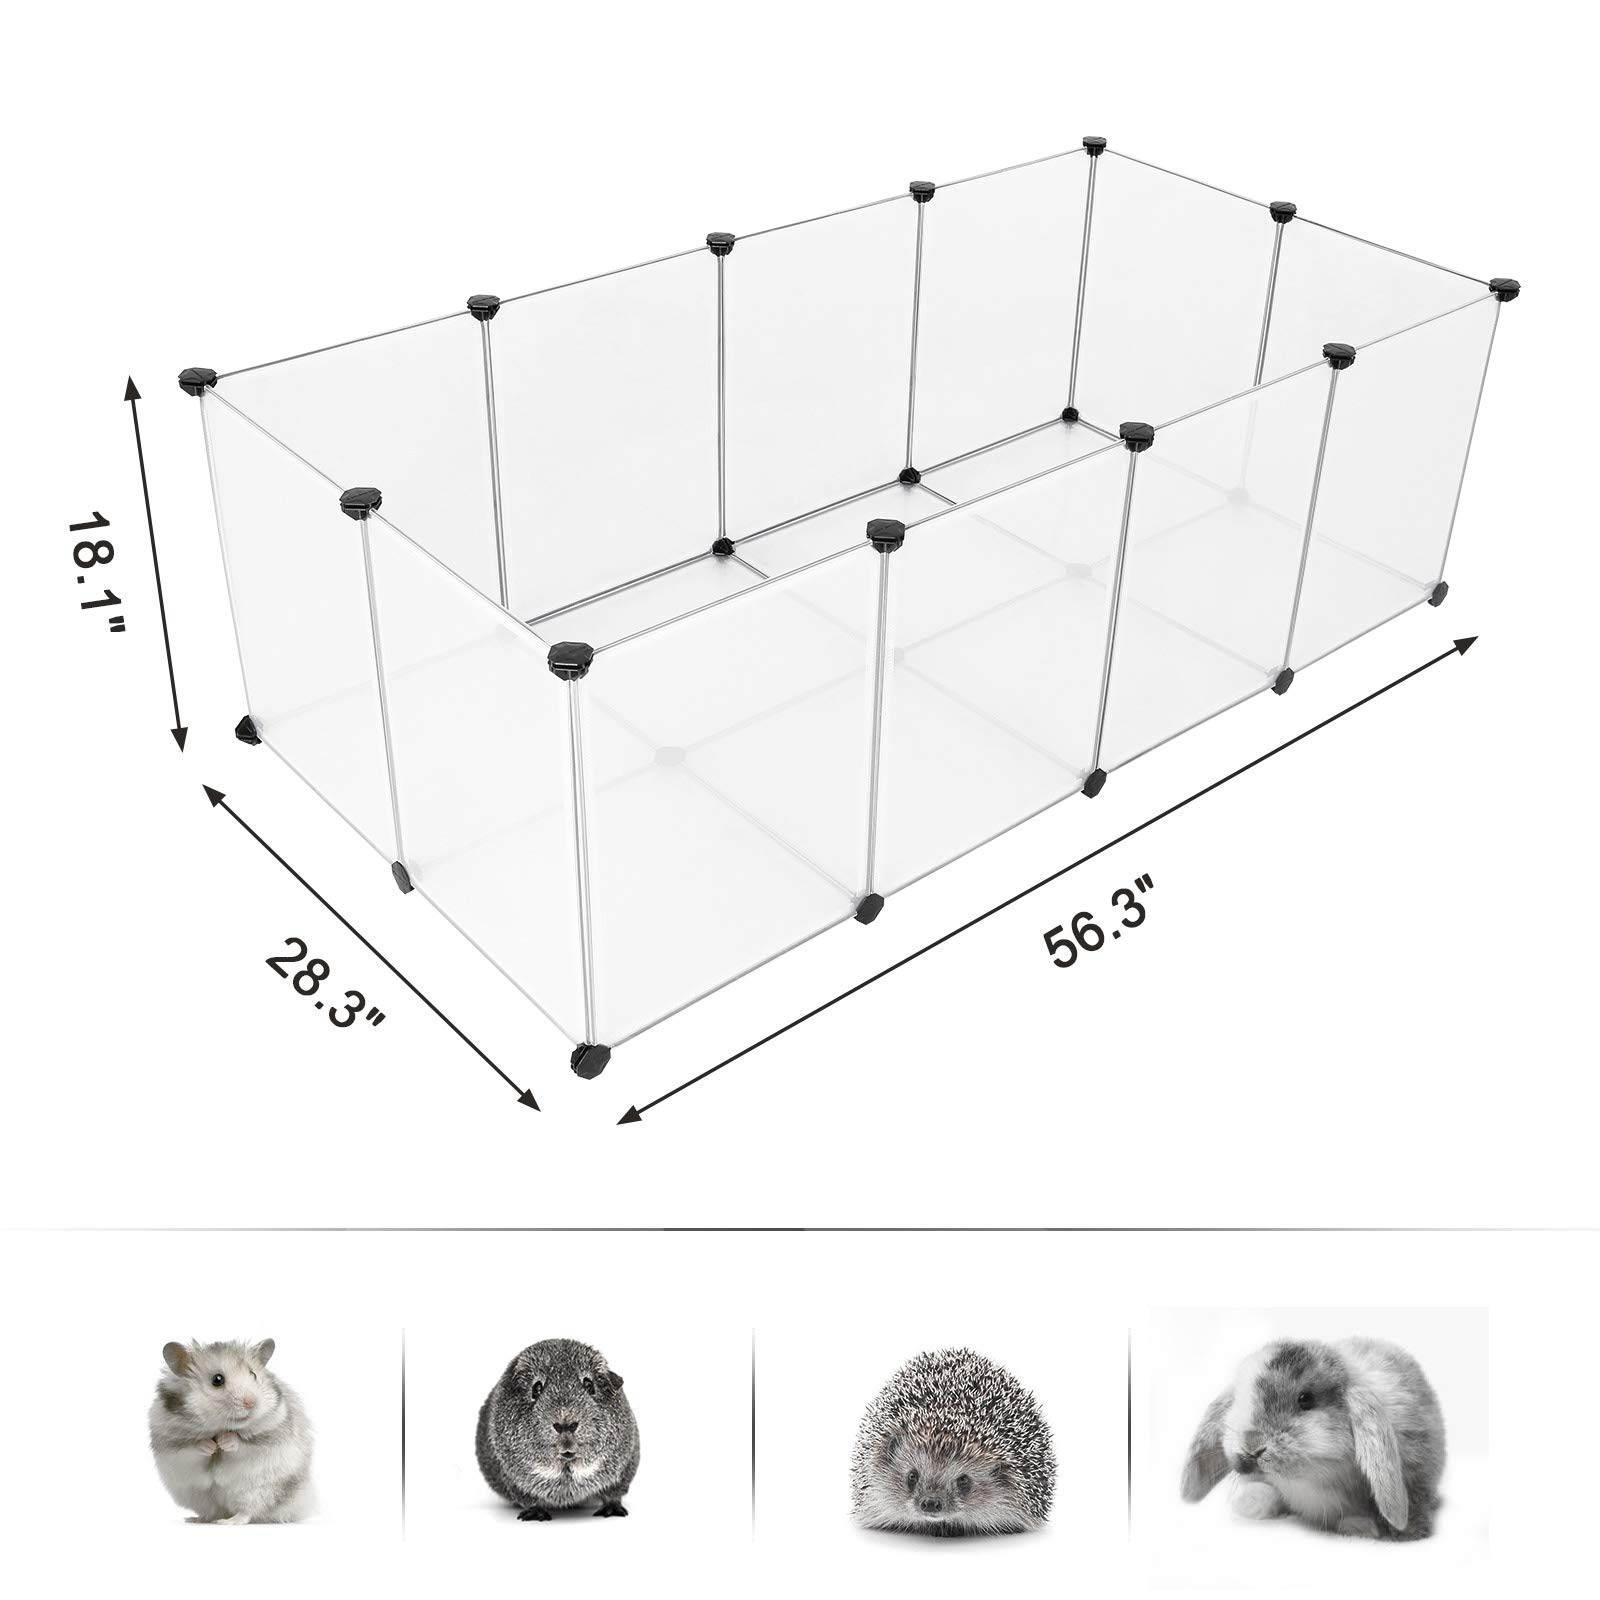 SONGMICS Pet Playpen,Fence Cage with Bottom for Small Animals Guinea Pigs, Hamsters, Bunnies,Rabbits, Pet Exercise Run and Crate, Transparent Plastic Panels, ULPC02W by SONGMICS (Image #6)